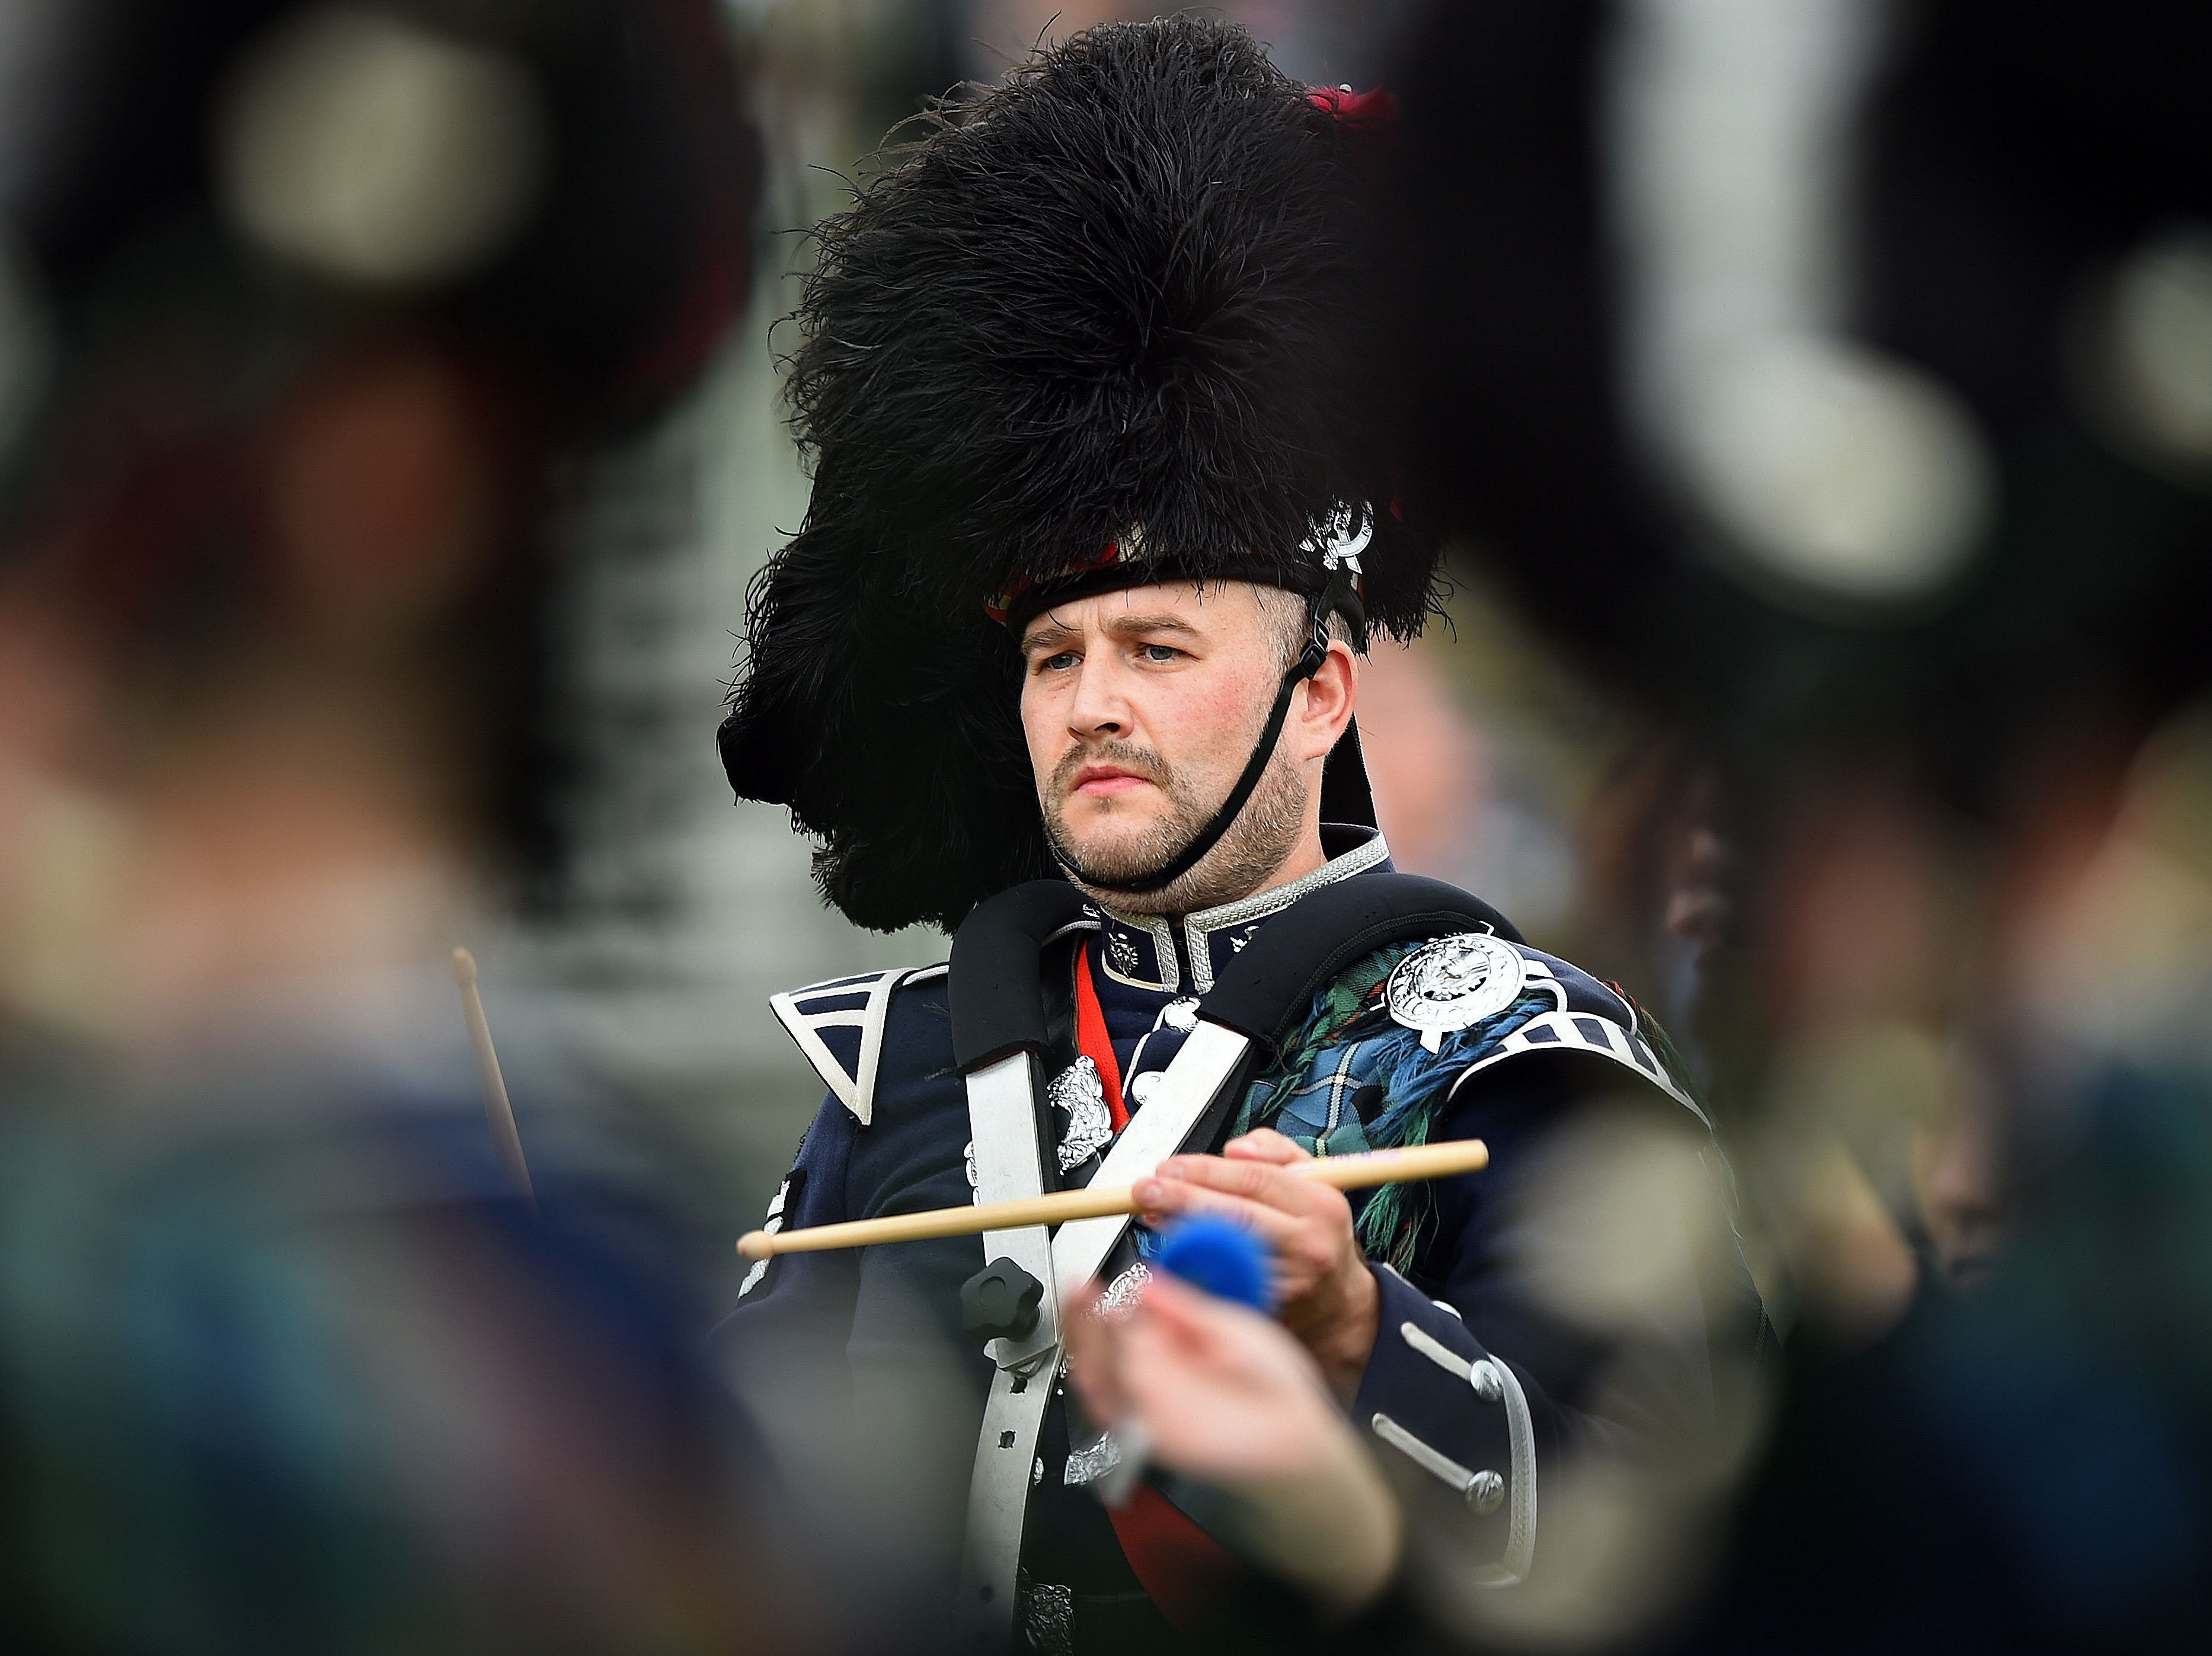 A drummer performs during the Massed Pipe Band parade at the annual Braemar Gathering.